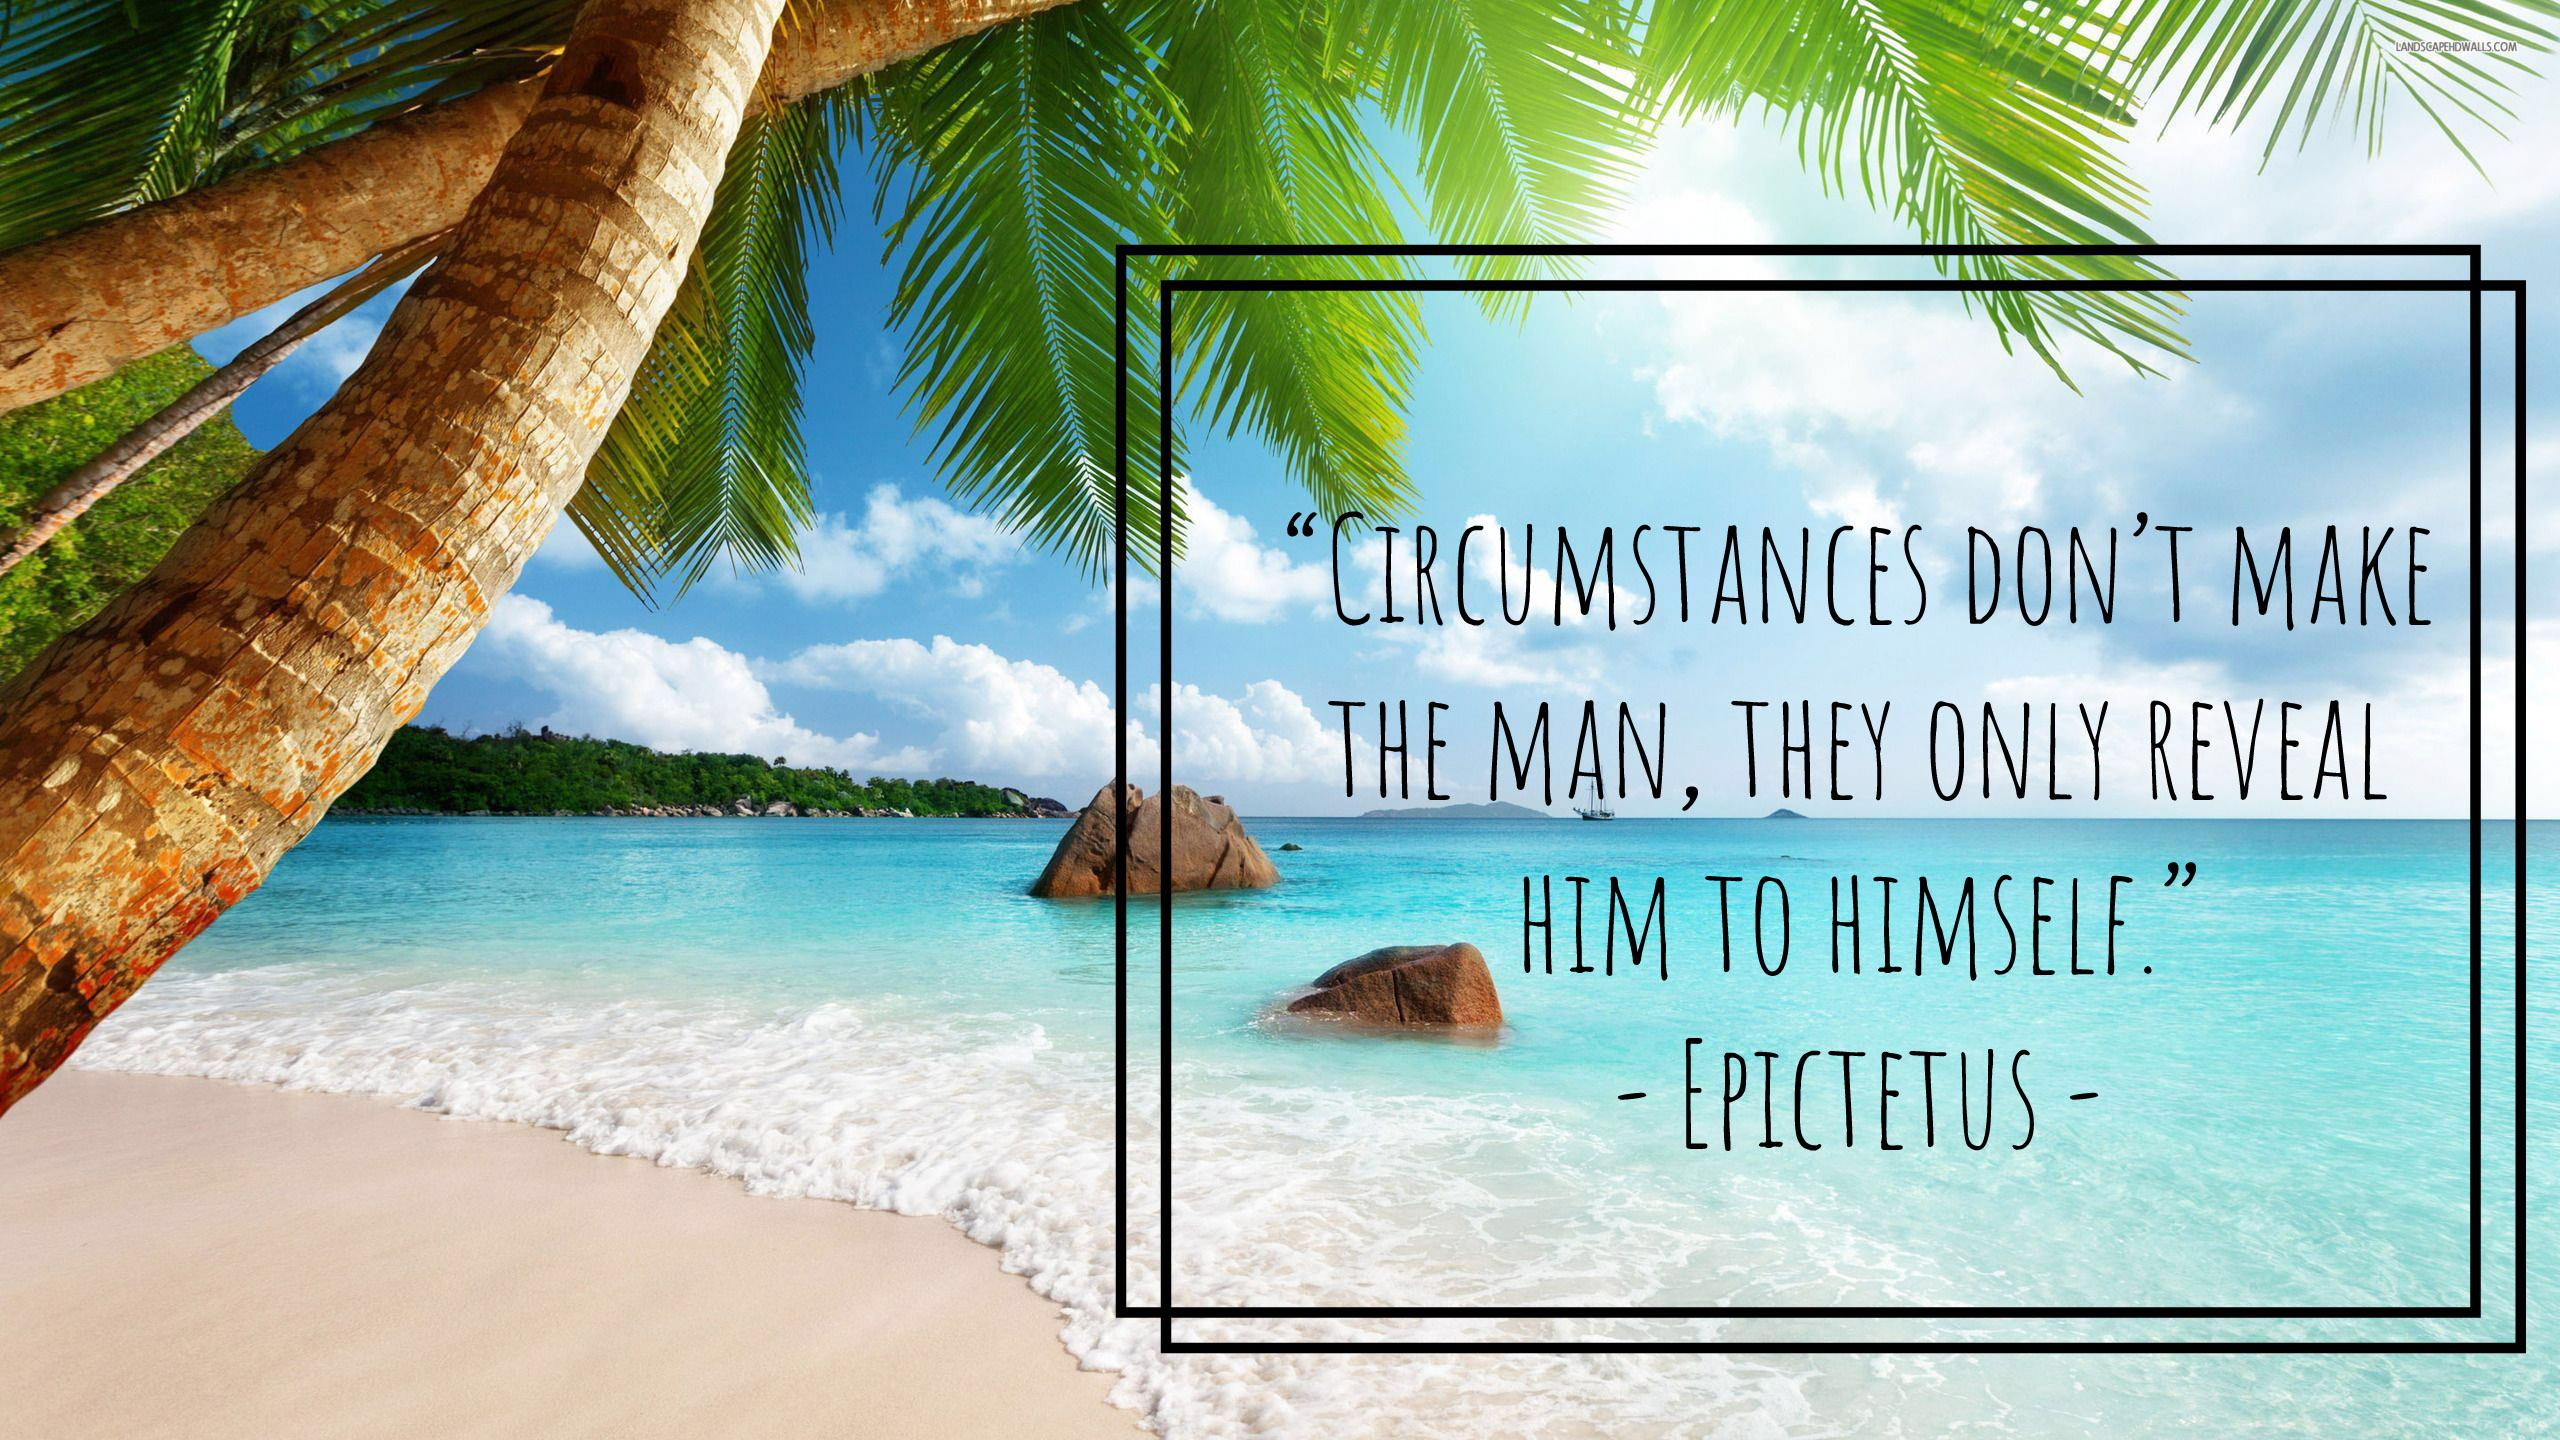 """Circumstances don't make the man, they only reveal him to himself."" – Epictetus (2560×1440)"